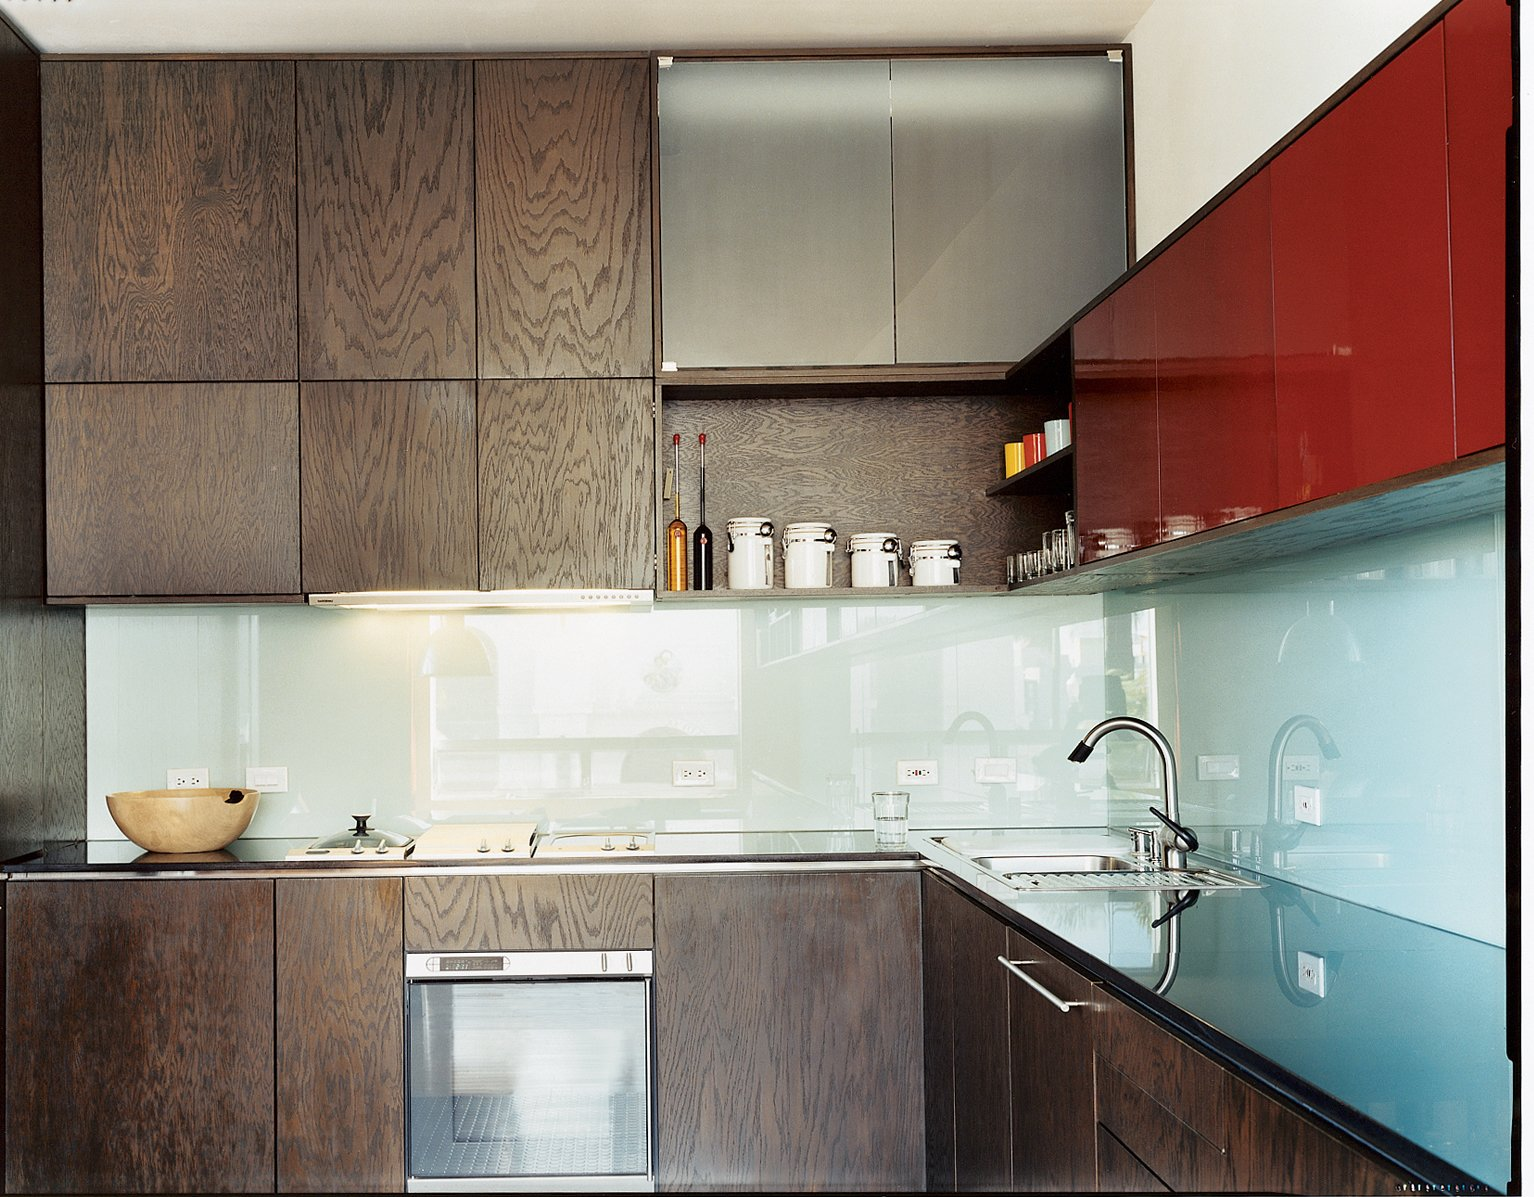 MS-31 designed and built all the kitchen cabinetry, as well as the dining table, in collaboration with Archkinetics. The frosted-glass backsplash offers easy cleaning.  Photo 5 of 11 in Making Sense of the City